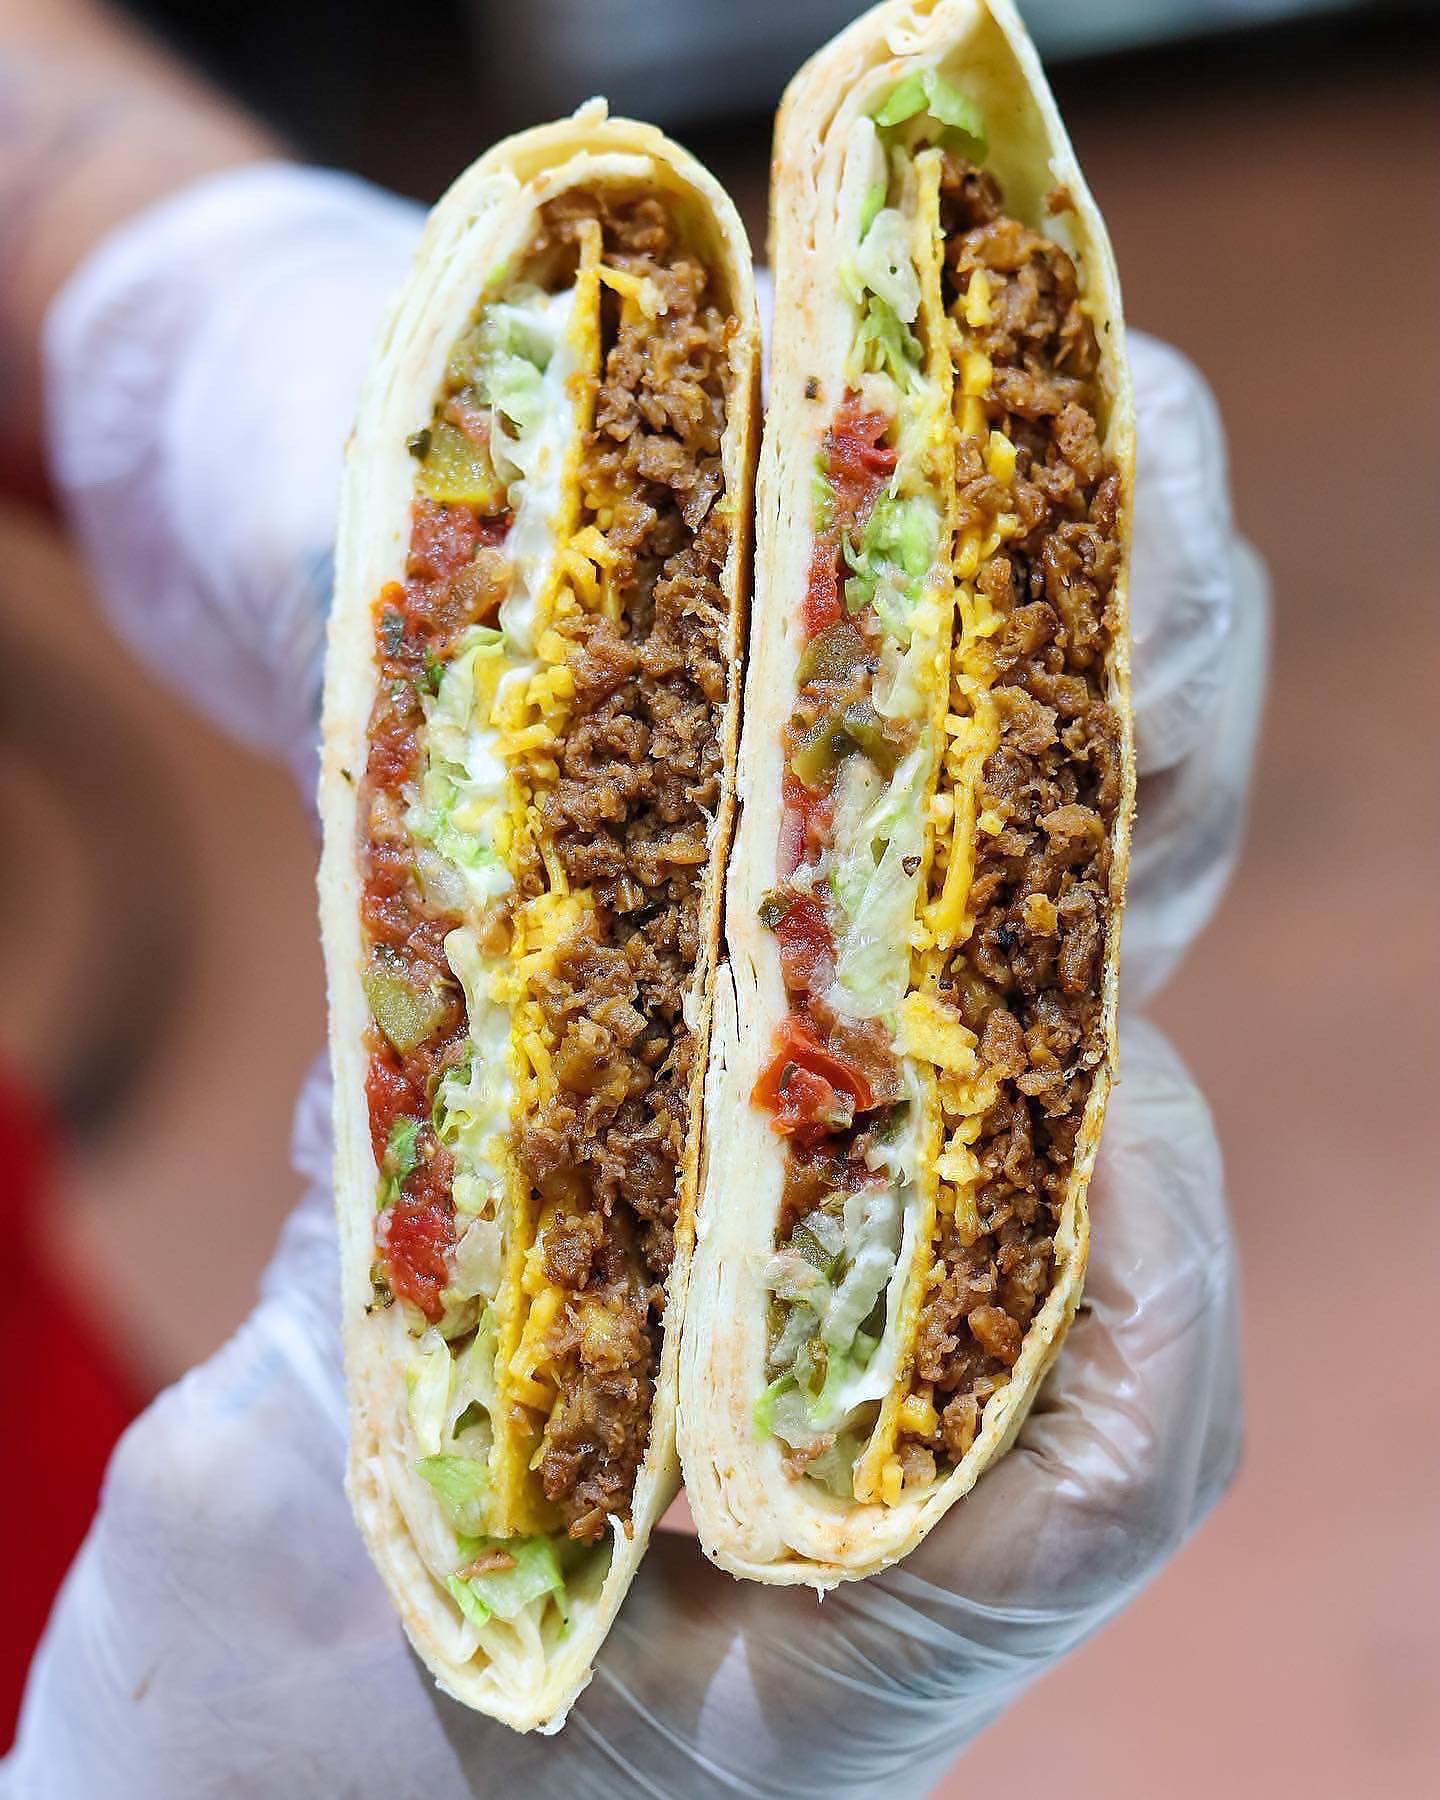 A vegan Crunchwrap, stuffed with plant-based meat, vegan cheese, lettuce, and pico de gallo, is sliced in half and held vertically by a gloved hand